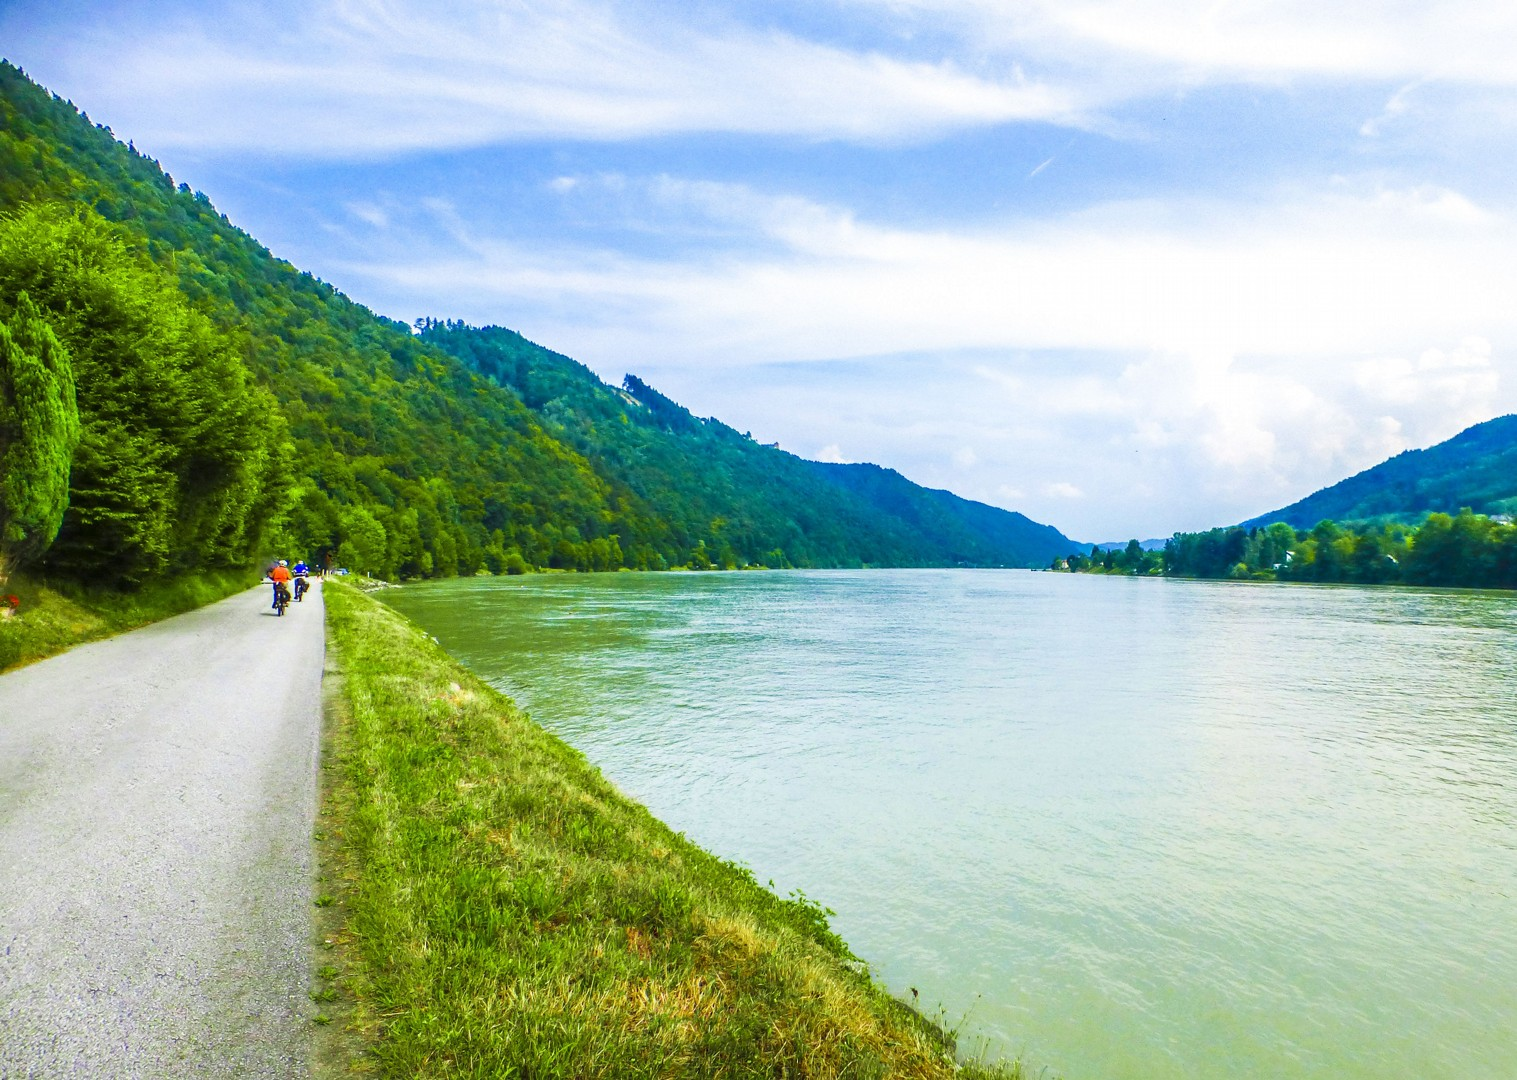 cycle-the-danube-beautidul-scenery-river-germany-austria.jpg - Germany and Austria - The Danube Cycle Path - Supported Leisure Cycling Holiday - Leisure Cycling